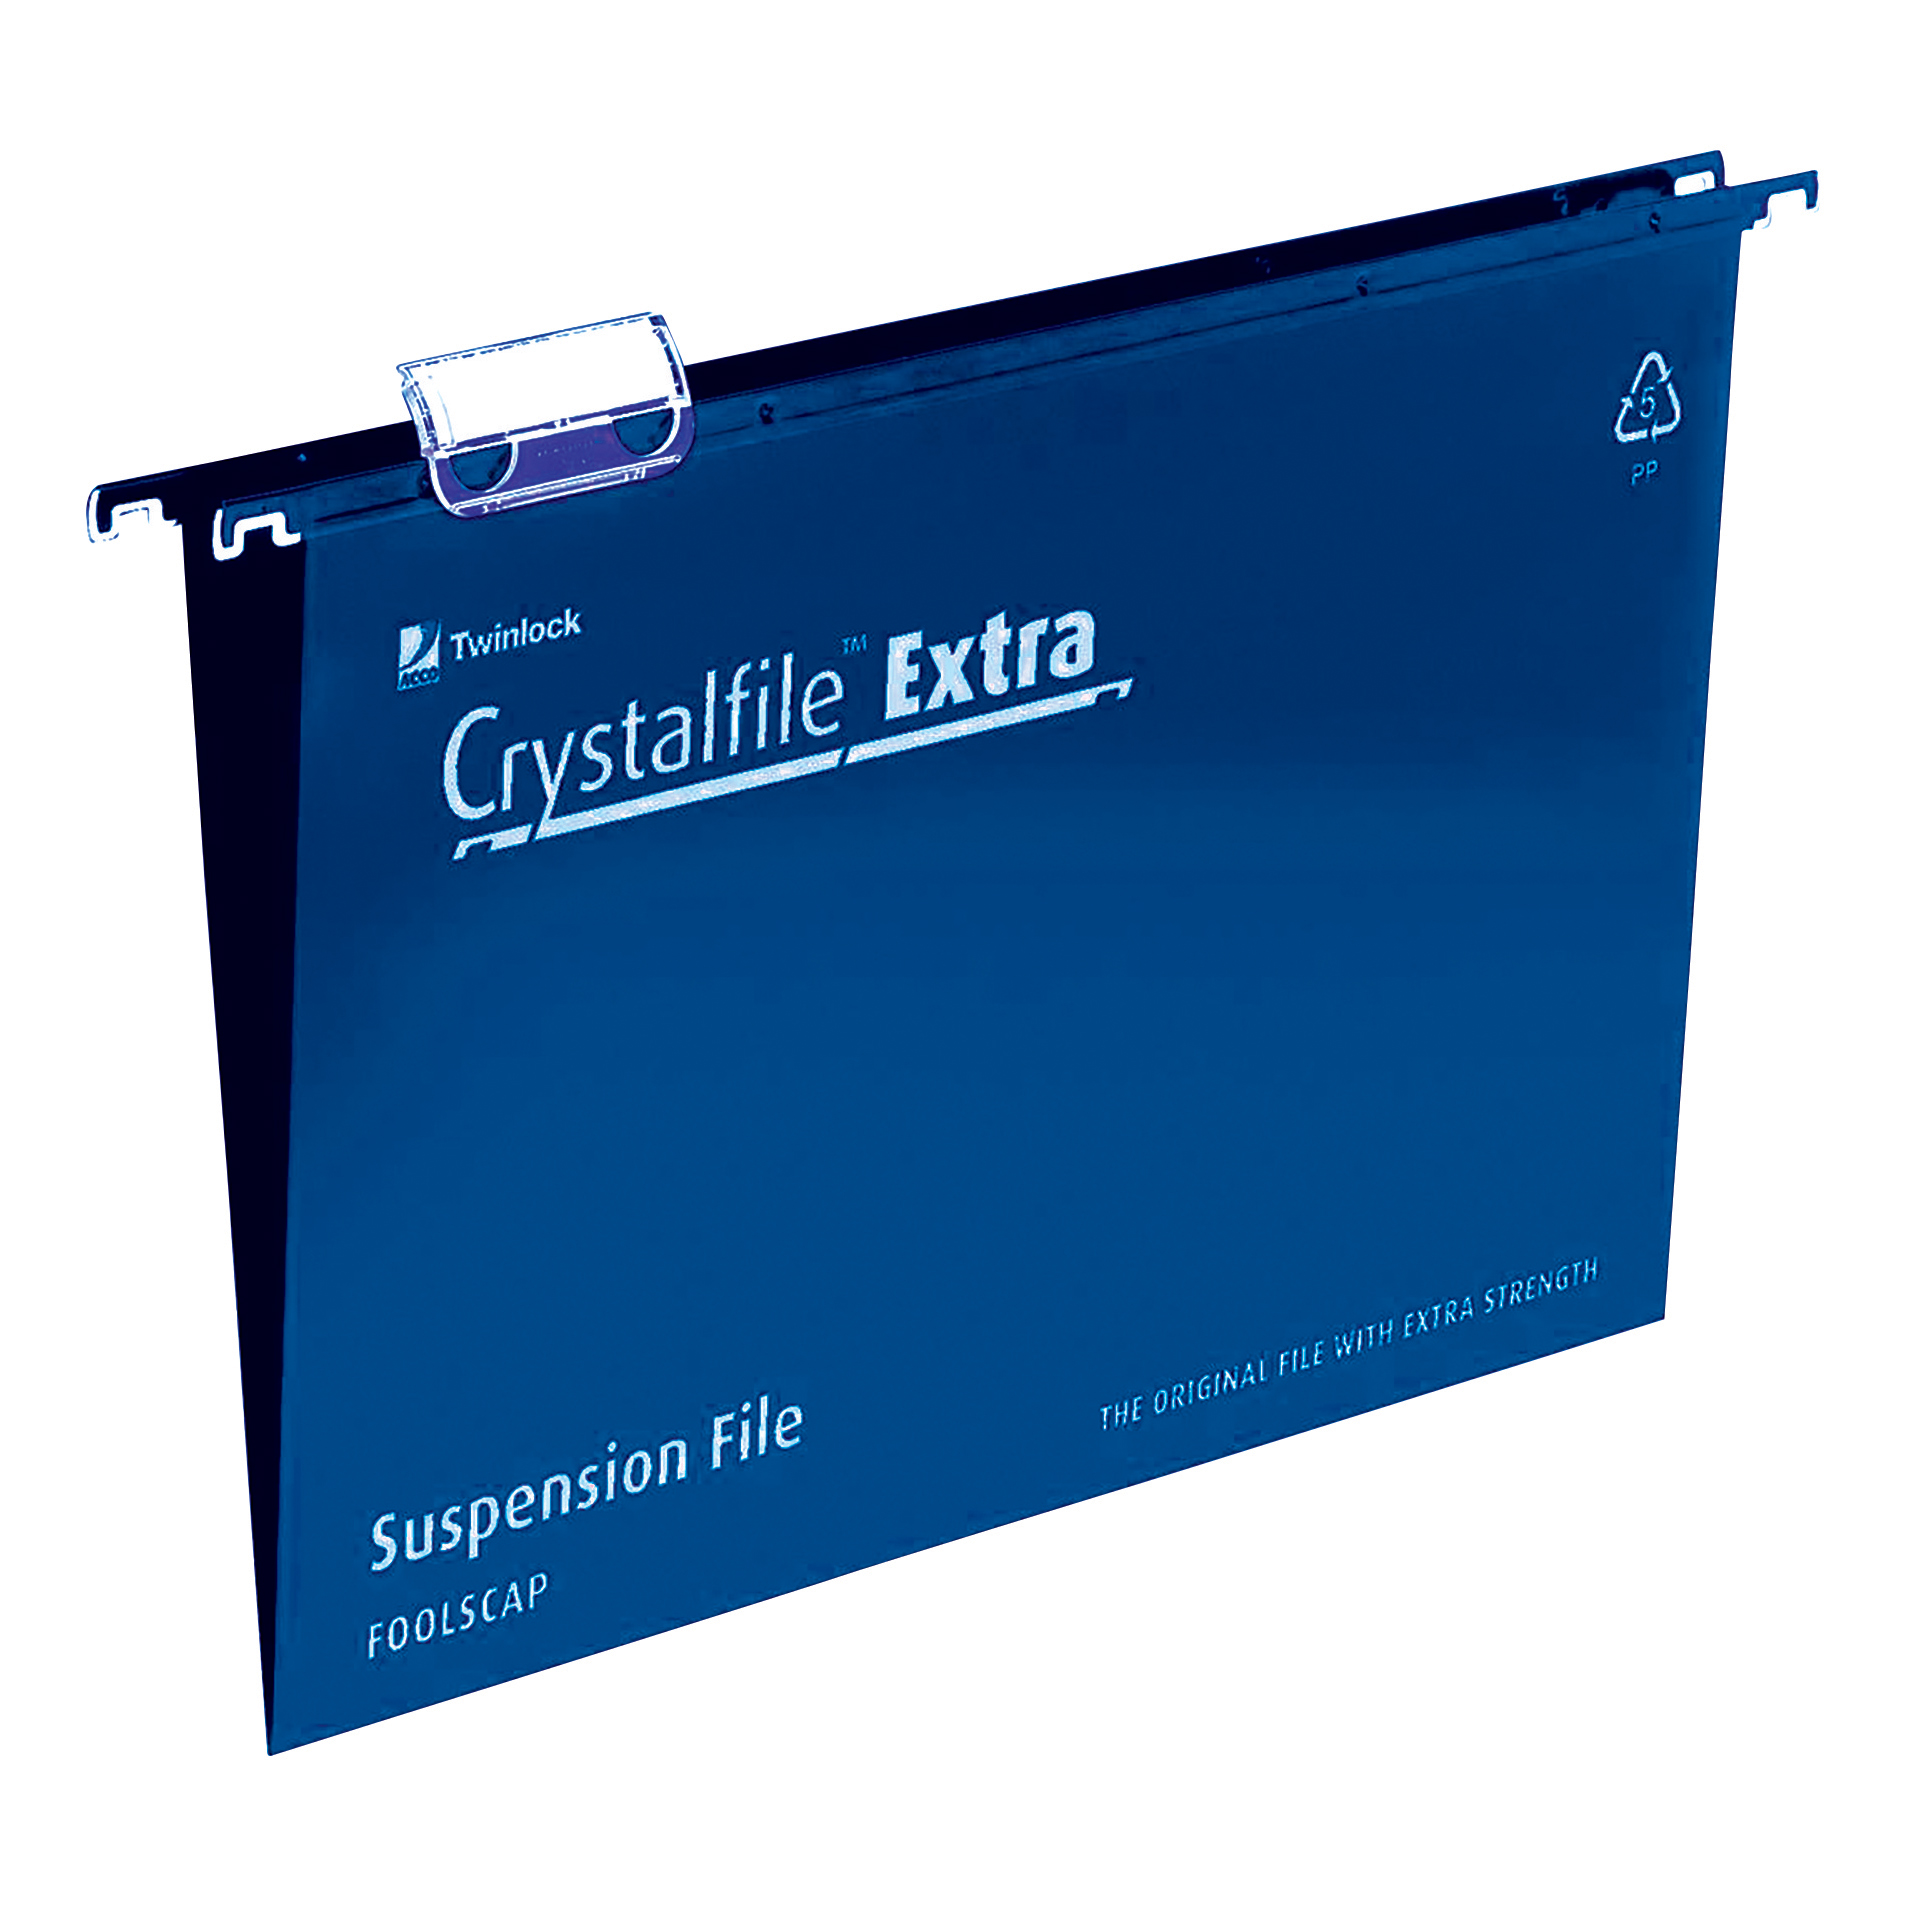 Suspension File Rexel Crystalfile Extra Suspension File Polypropylene 15mm V-base Foolscap Blue Ref 70630 Pack 25